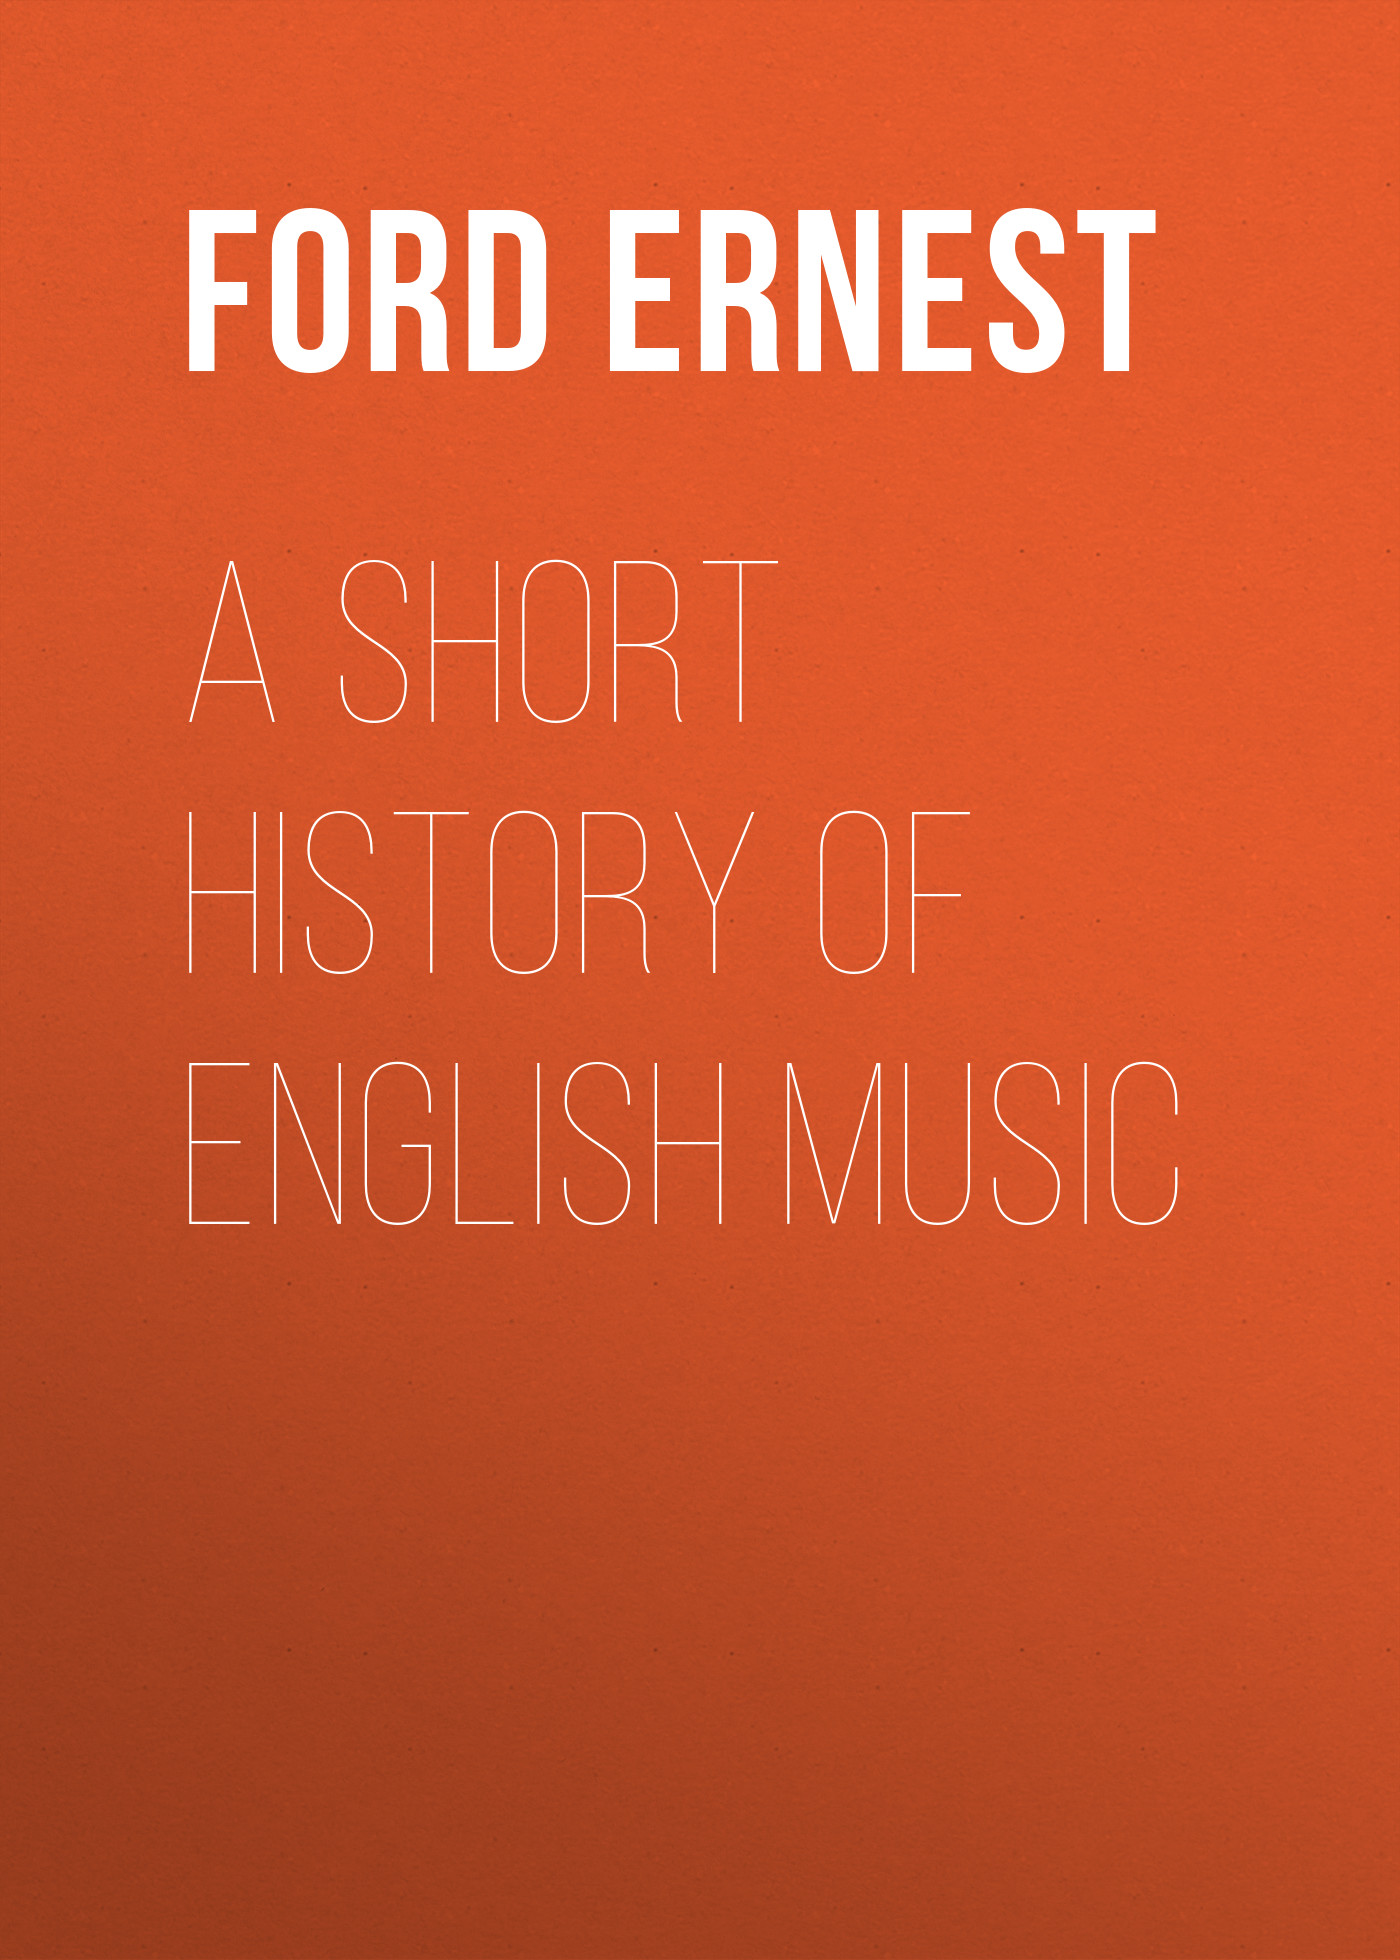 Ford Ernest A Short History of English Music a history of western music 4e ise paper